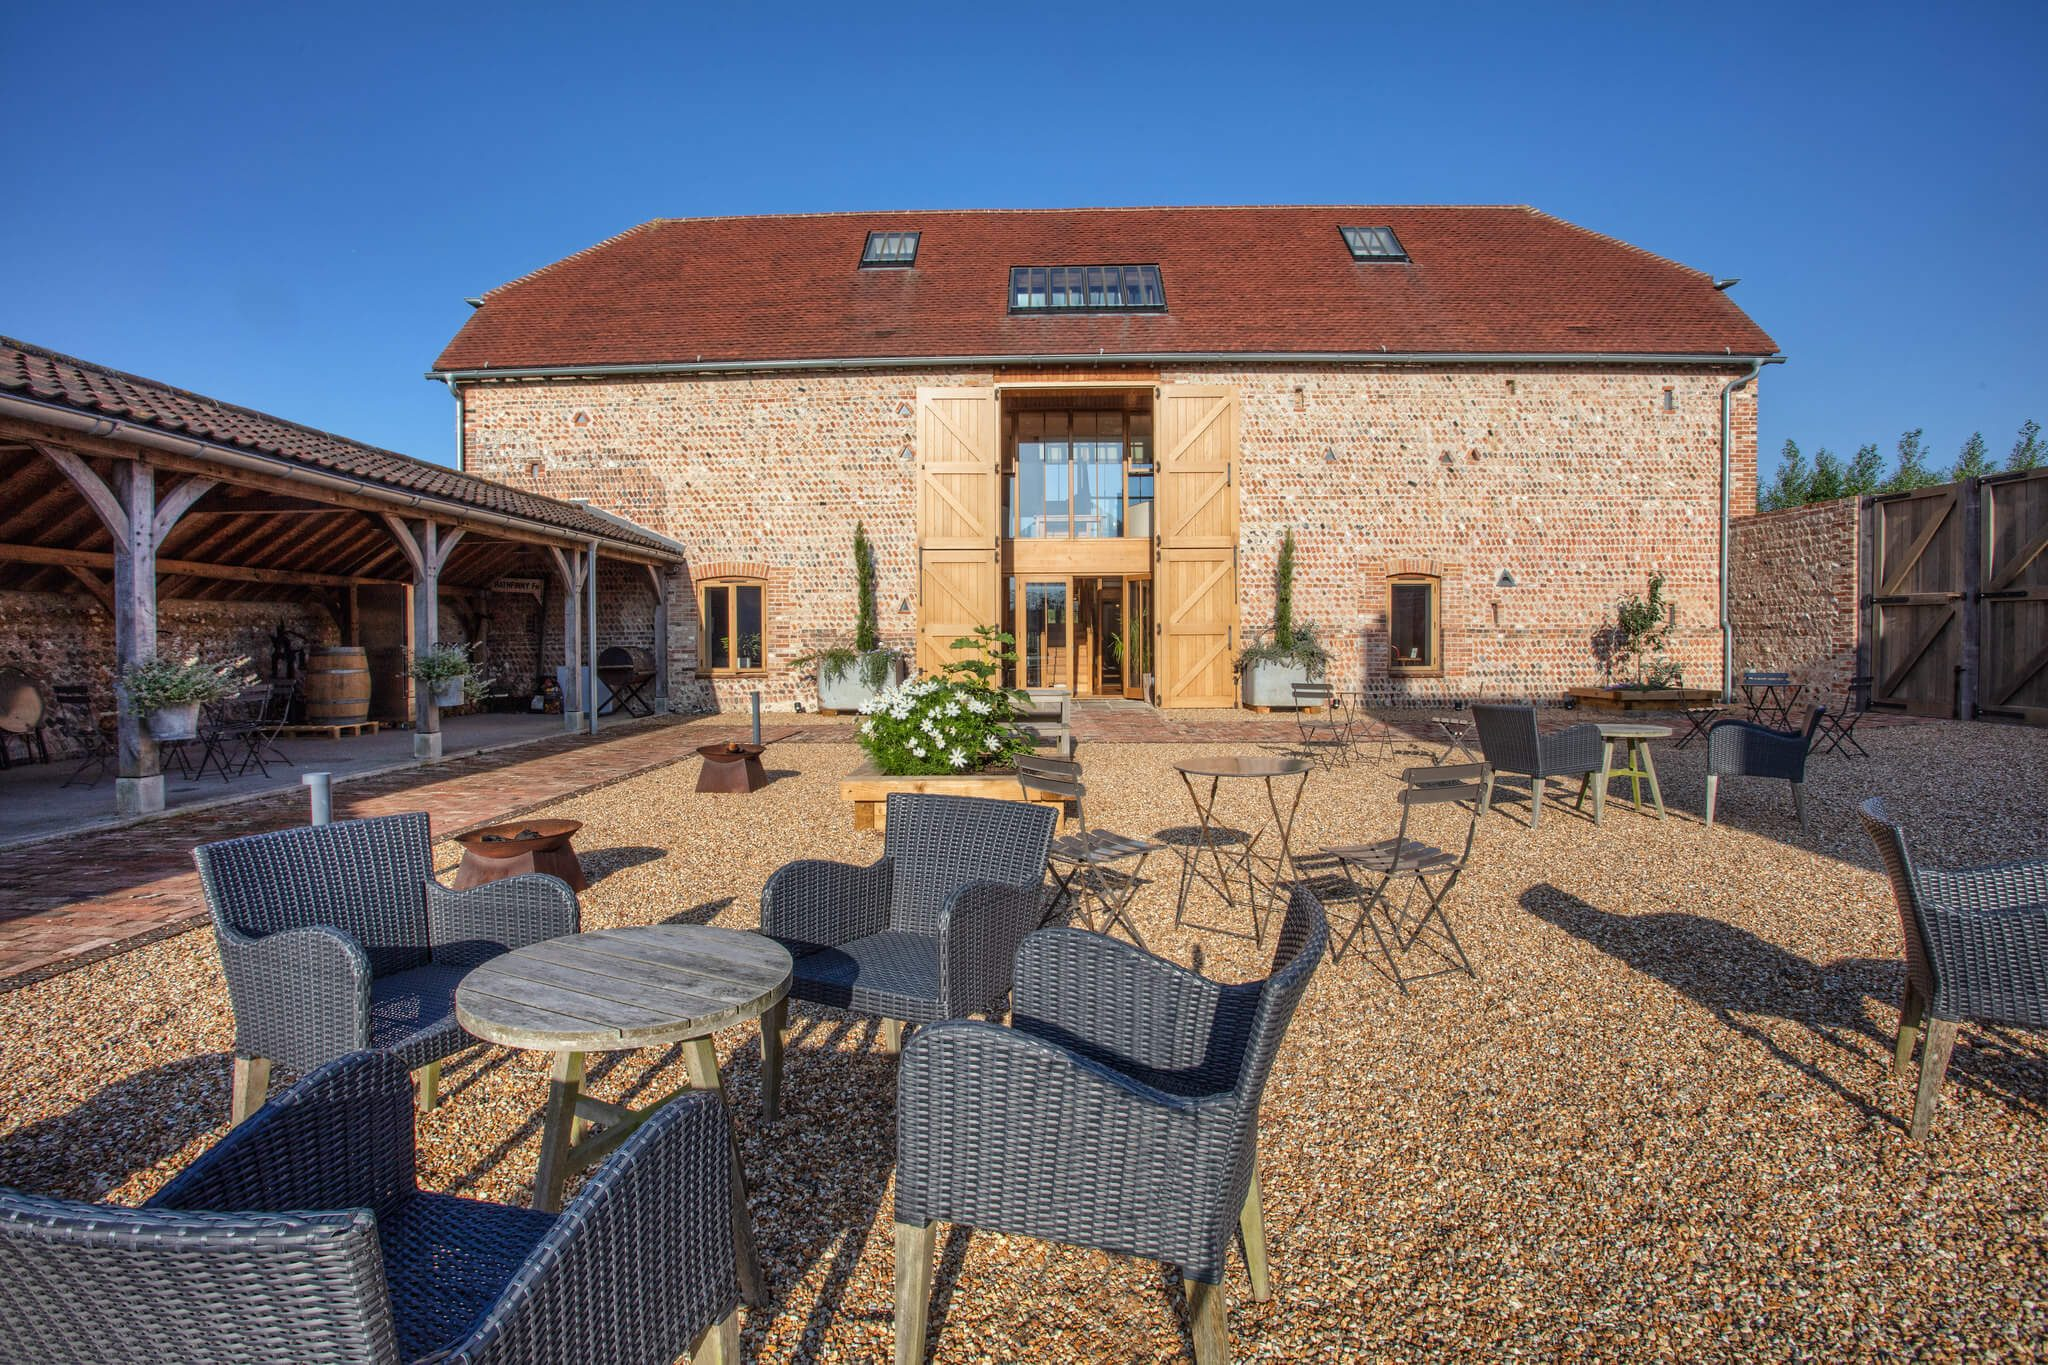 Flint Barns courtyard